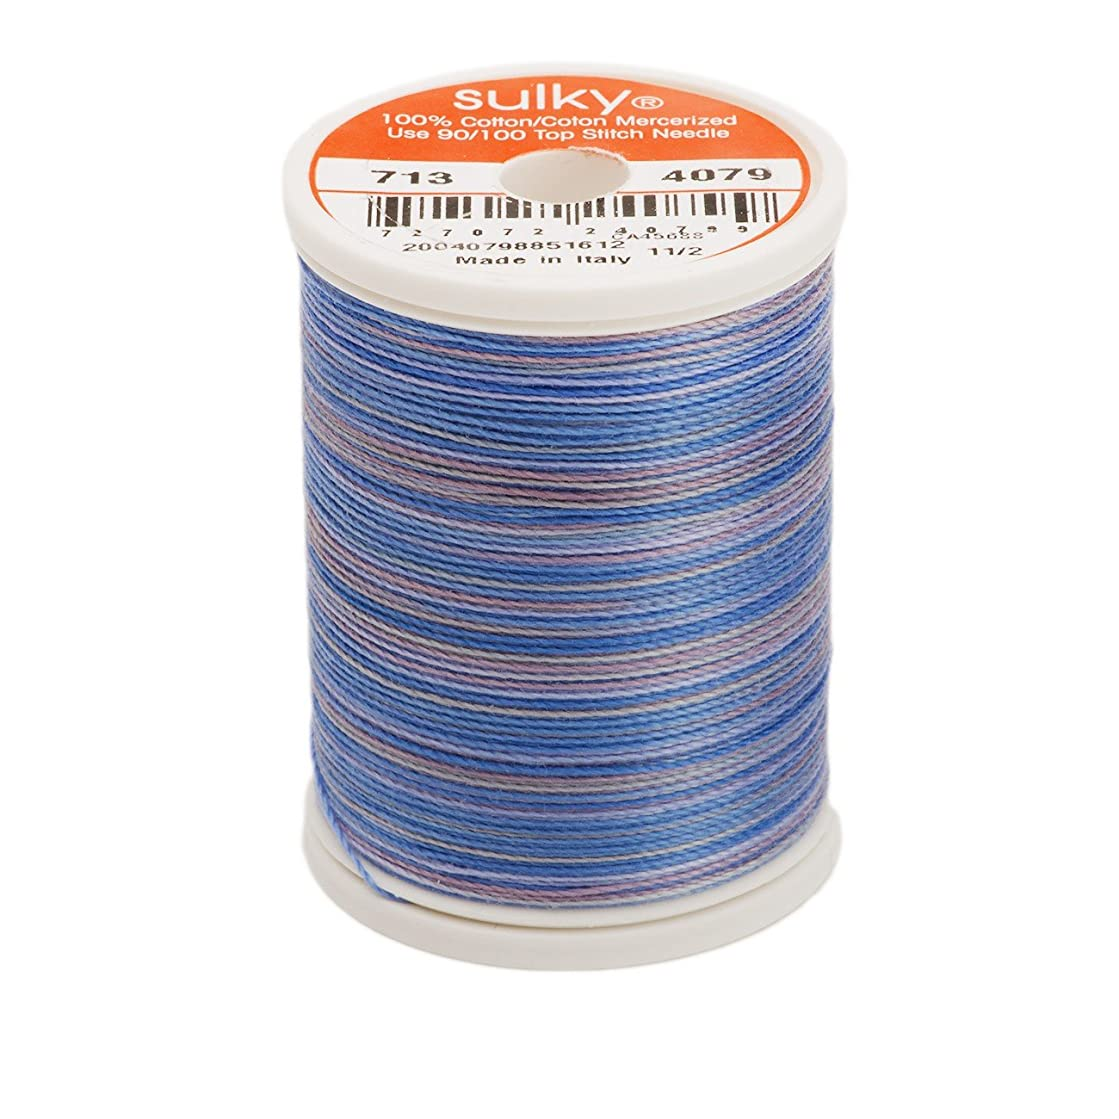 Sulky 713-4079 12-Weight Cotton Blendable Thread, 330-Yard, Hyacinth